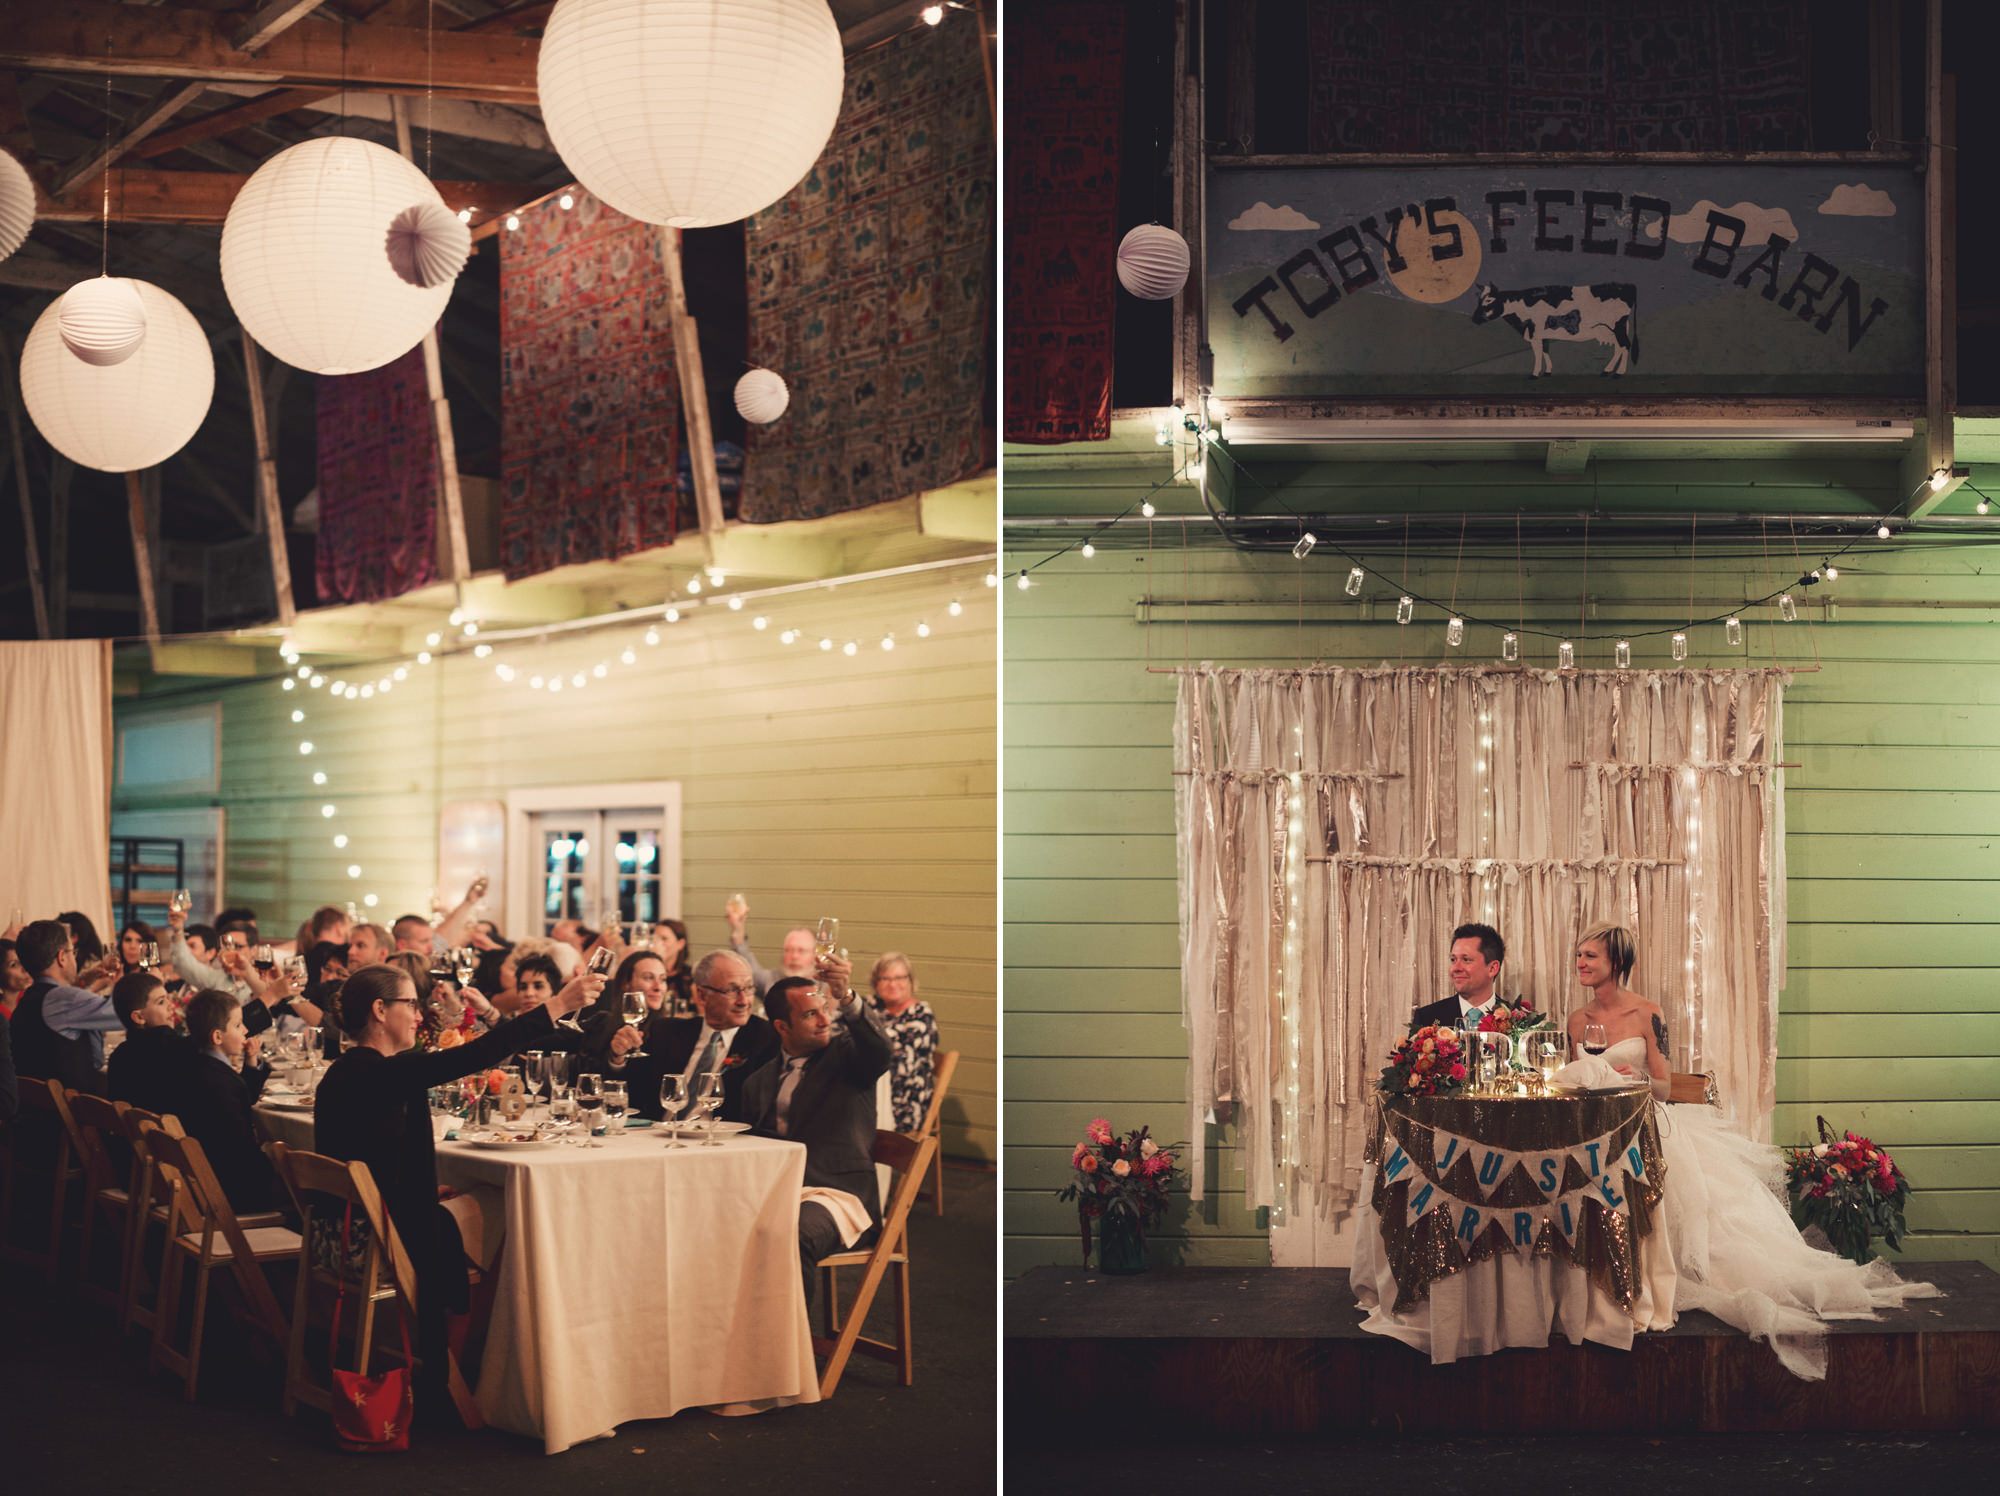 Toby's Feed Barn Wedding ©Anne-Claire Brun 136